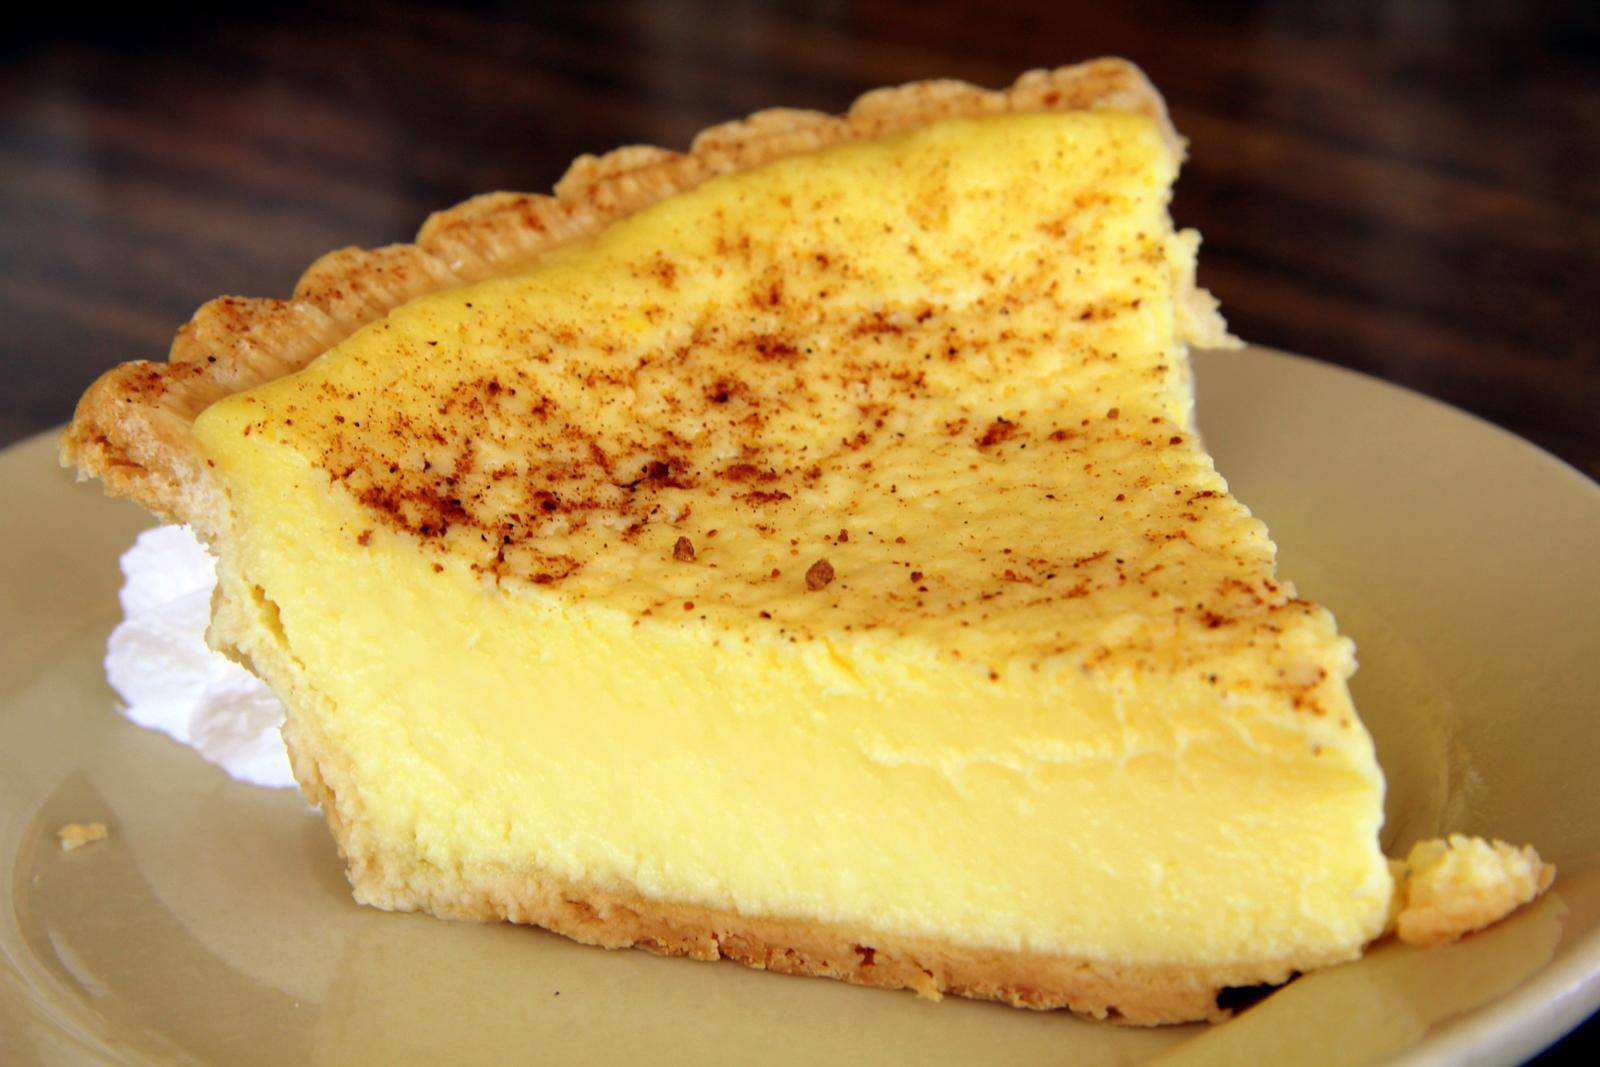 Gina's Favorites: Old Fashioned Custard Pie